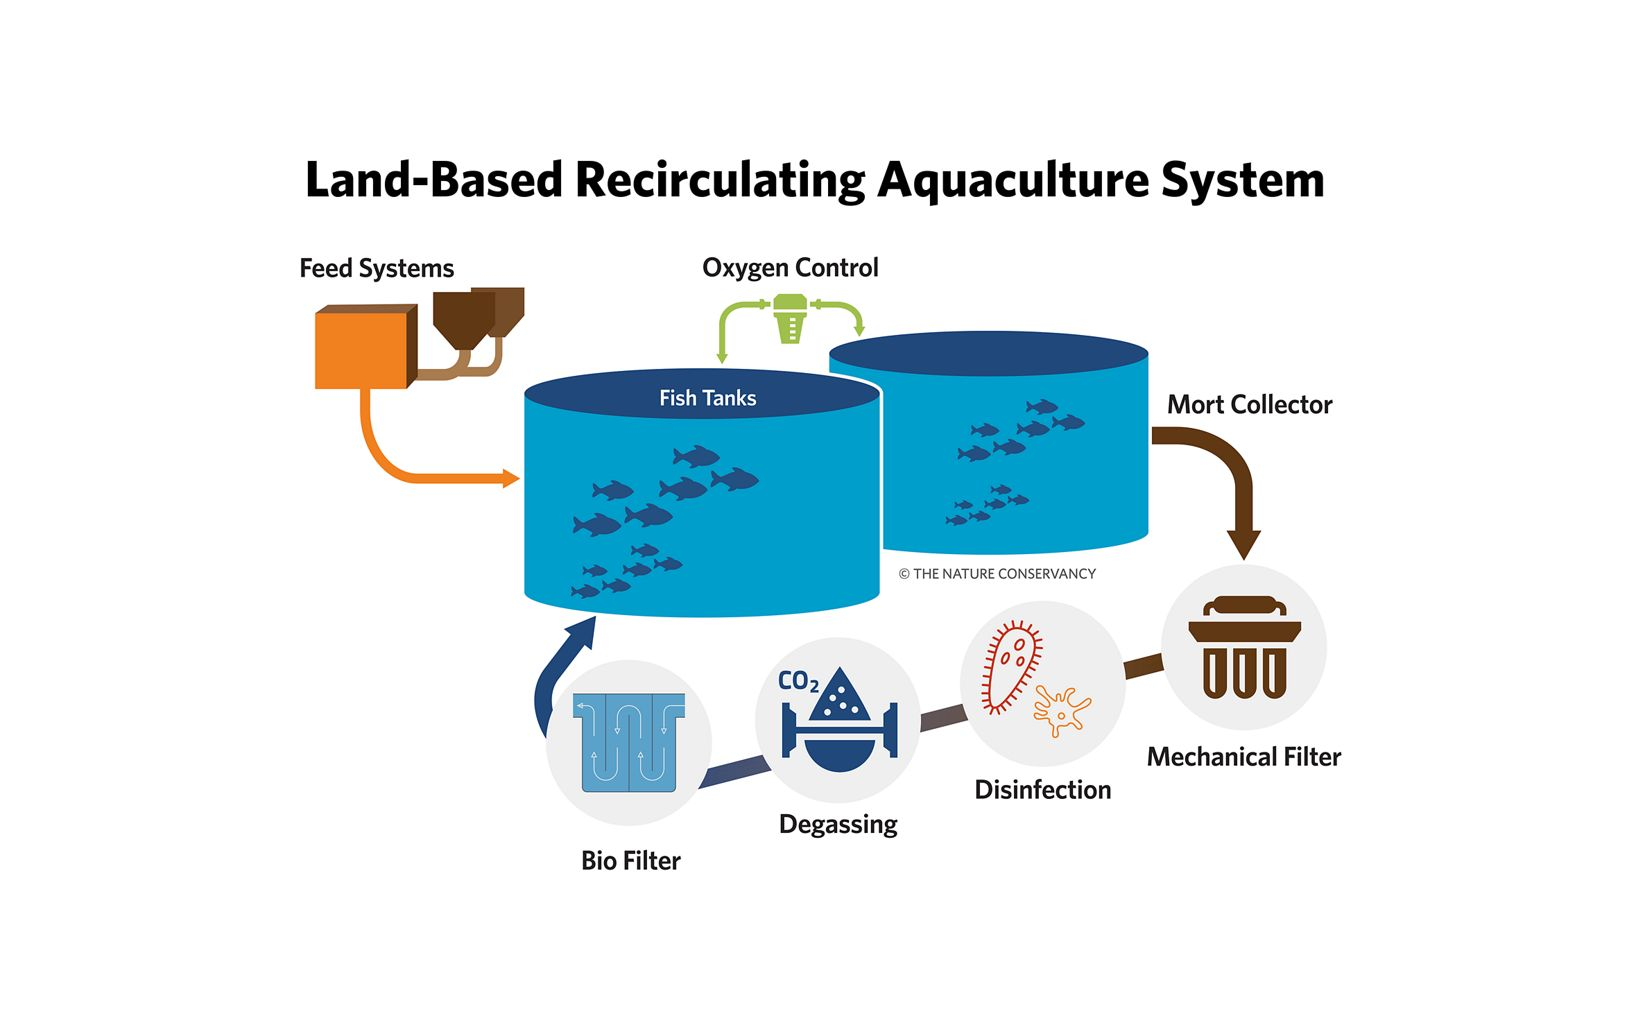 Land-based RAS may offer an alternative to traditional, near-shore finfish production that may enable improved environmental outcomes, higher production density, reduced mortality, and greater control over production outcomes.